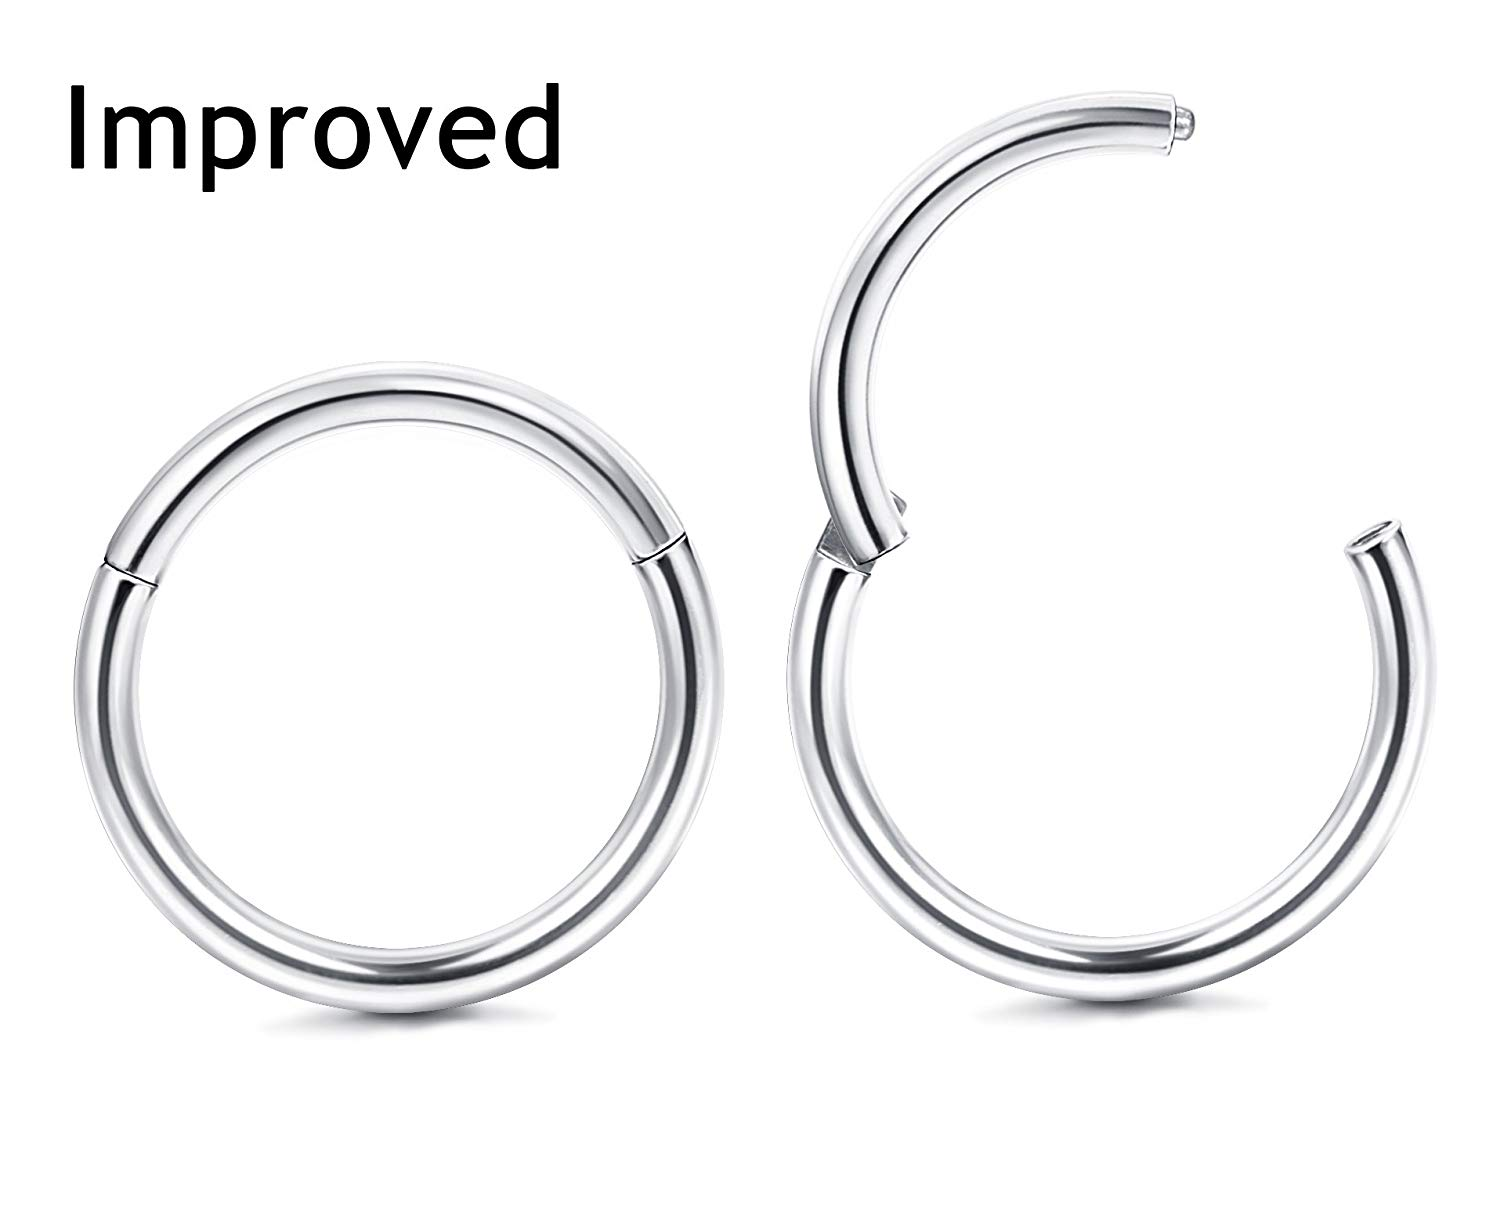 f457b460d Get Quotations · Thunaraz Improved 2Pcs 18G Stainless Steel Cartilage Hoop  Earrings for Men Women Nose Hoop Ring Helix